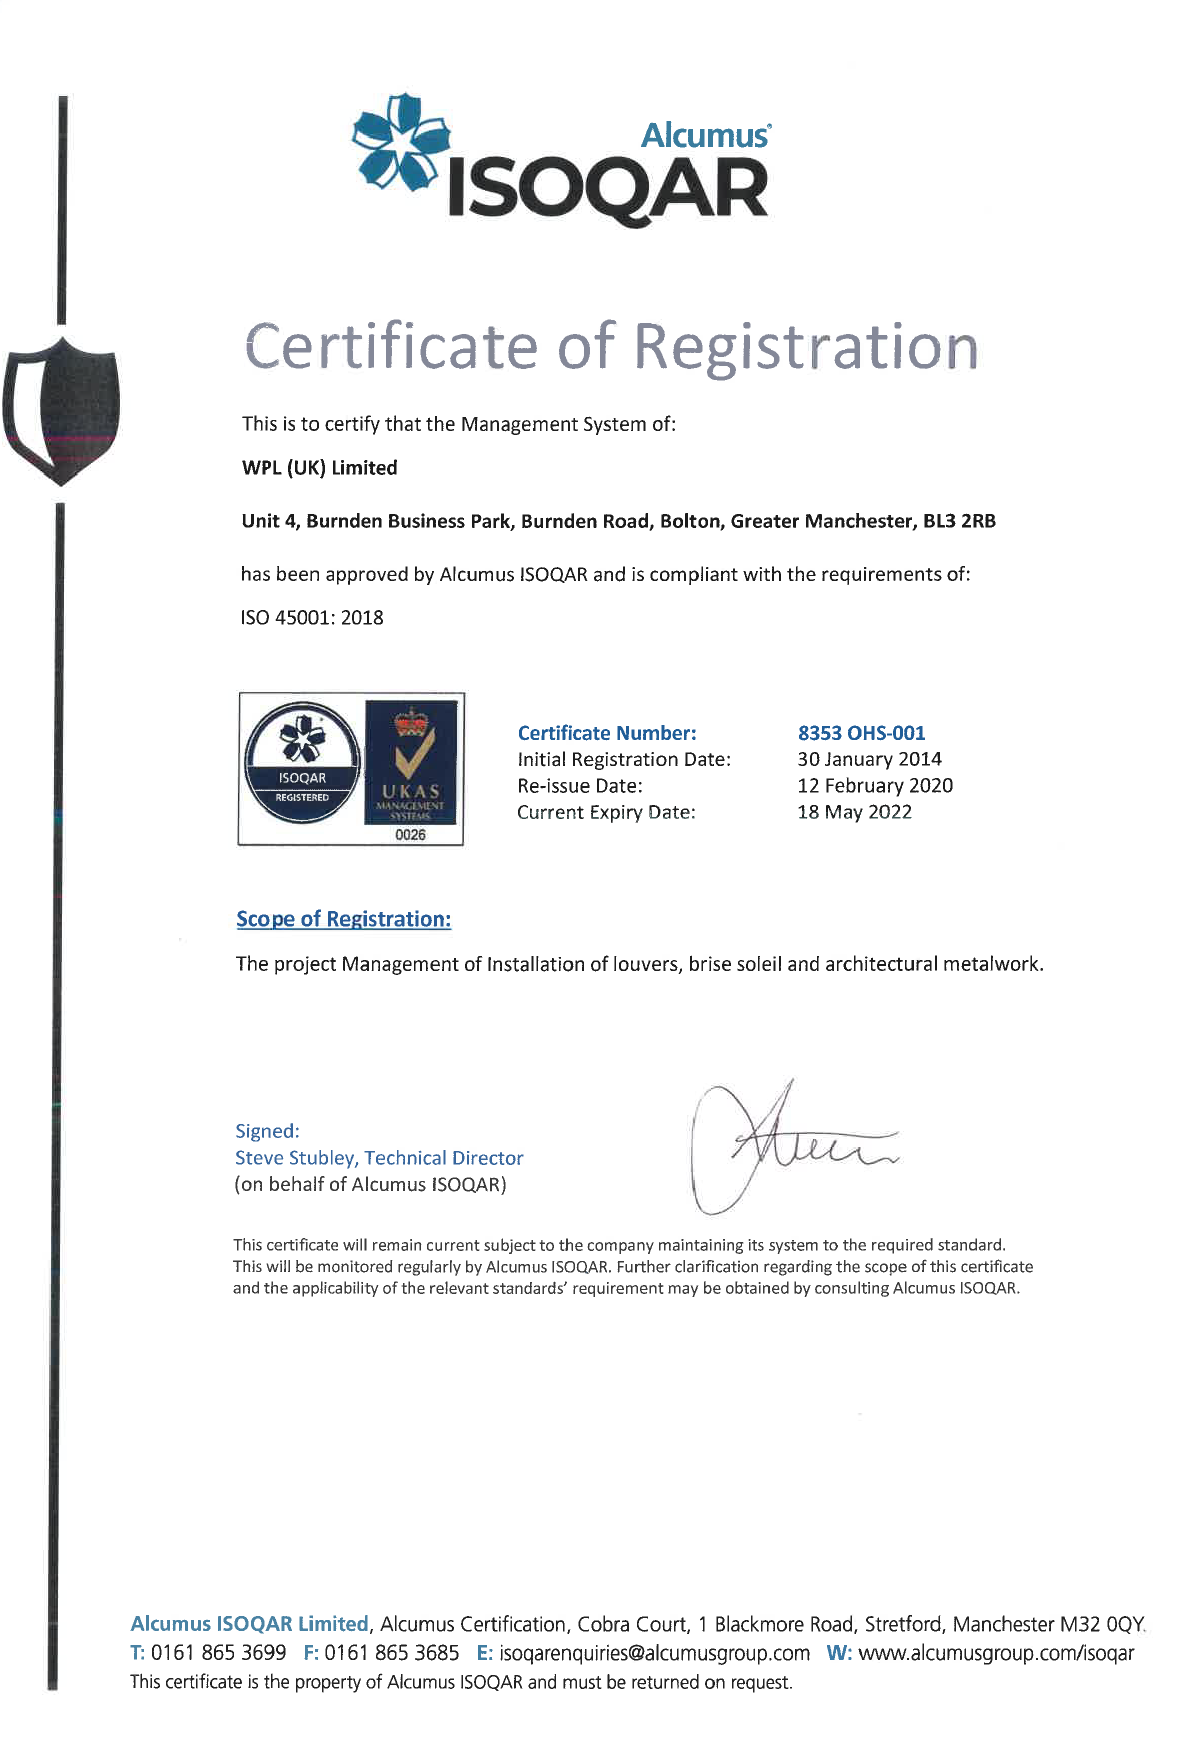 WPLUK ISO 45001 2018 Certification to 18th May 2022